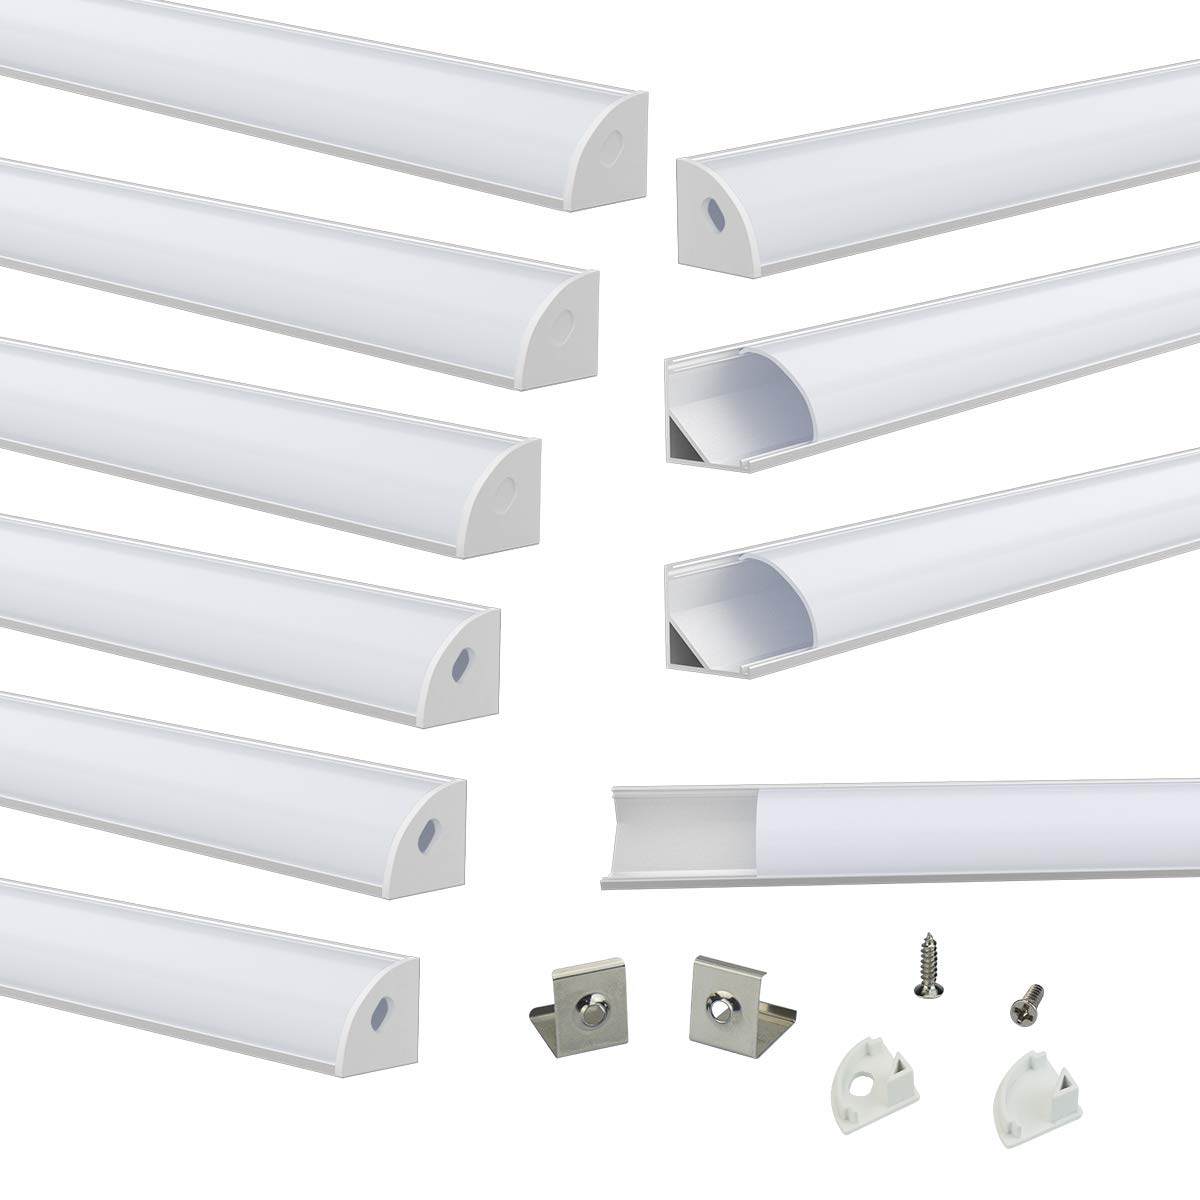 Muzata V-Shape LED Channel System with Milky White Cover Frosted Diffuser,Aluminum Extrusion Profile Housing Track for 3528,5050,5630 Strip Tape Lights V1SW 2M WW,LV1 LW1 L2M,10Pack 2M/6.6FT